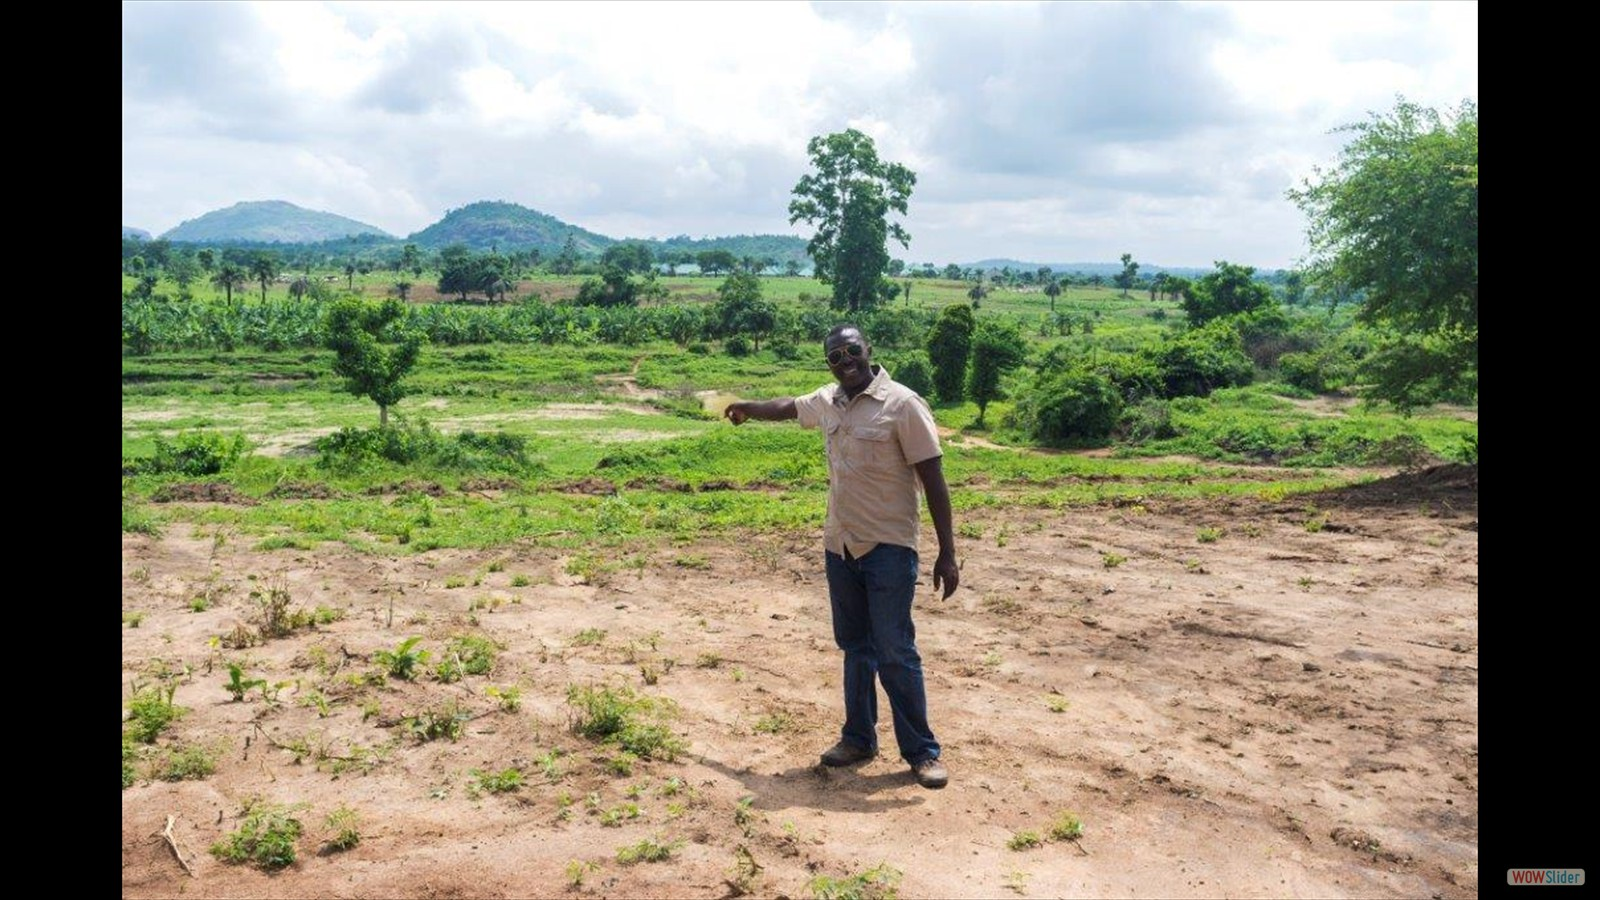 Manpan will eventually build a Guest House overlooking a river and Valley. Manpan has 20 acres of land to develop here